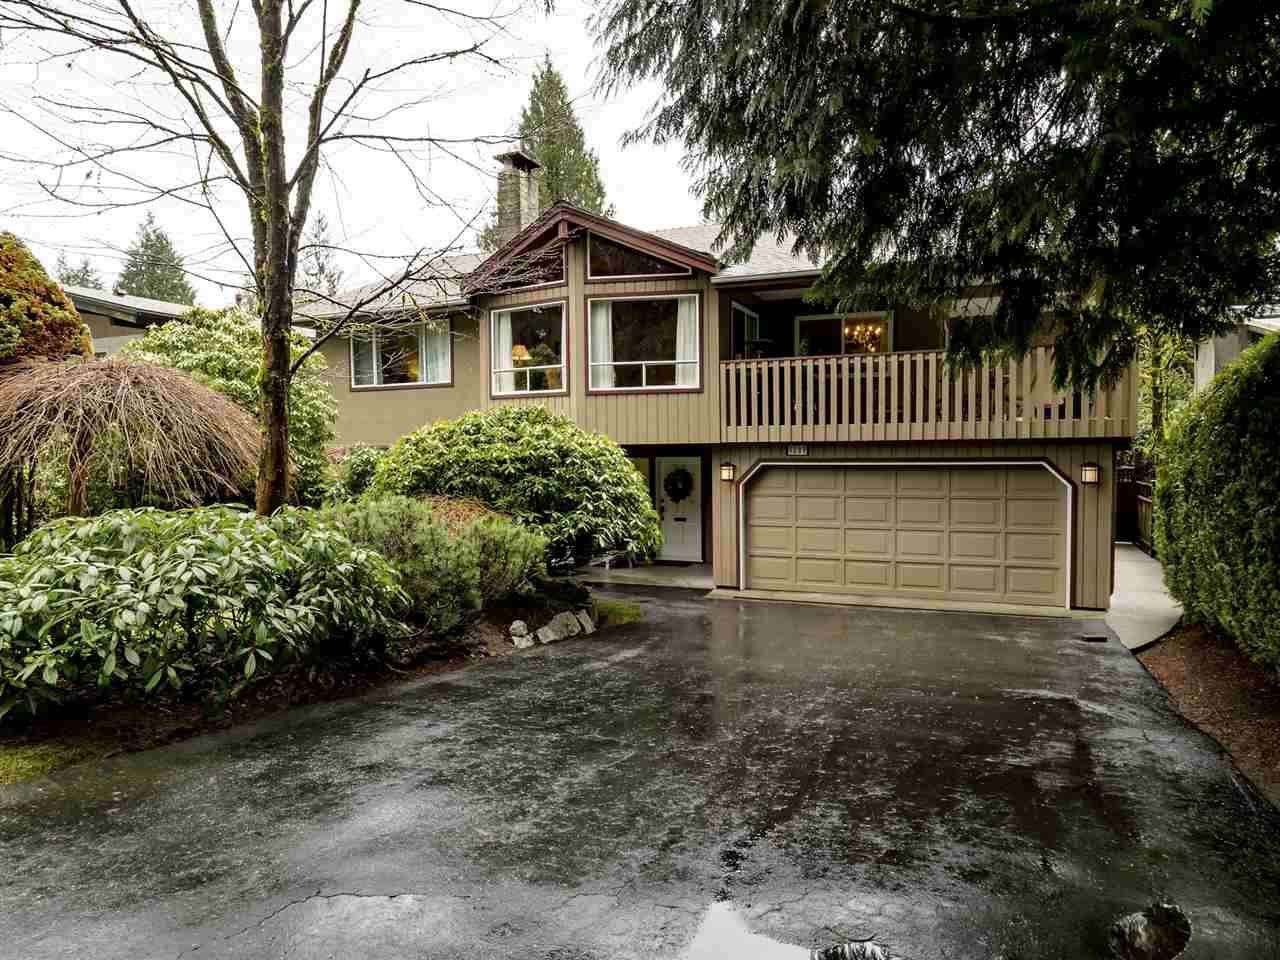 Main Photo: 1741 COLEMAN STREET in North Vancouver: Lynn Valley House for sale : MLS®# R2234092